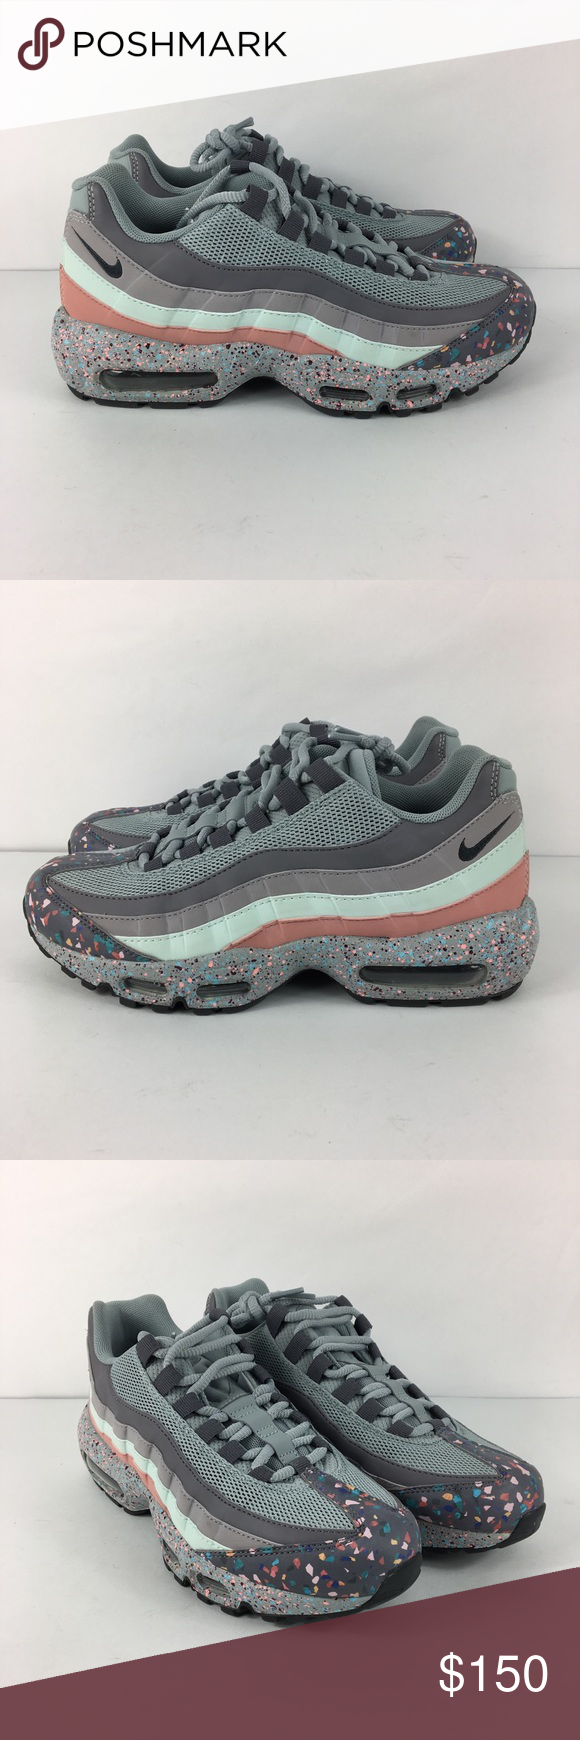 fb07931c8be4 Nike Air Max 95 SE Confetti Womens Running Shoes Nike Air Max 95 SE  Confetti Womens 918413-002 Pumice Grey Running Shoes Size 8. Condition  New  without box.